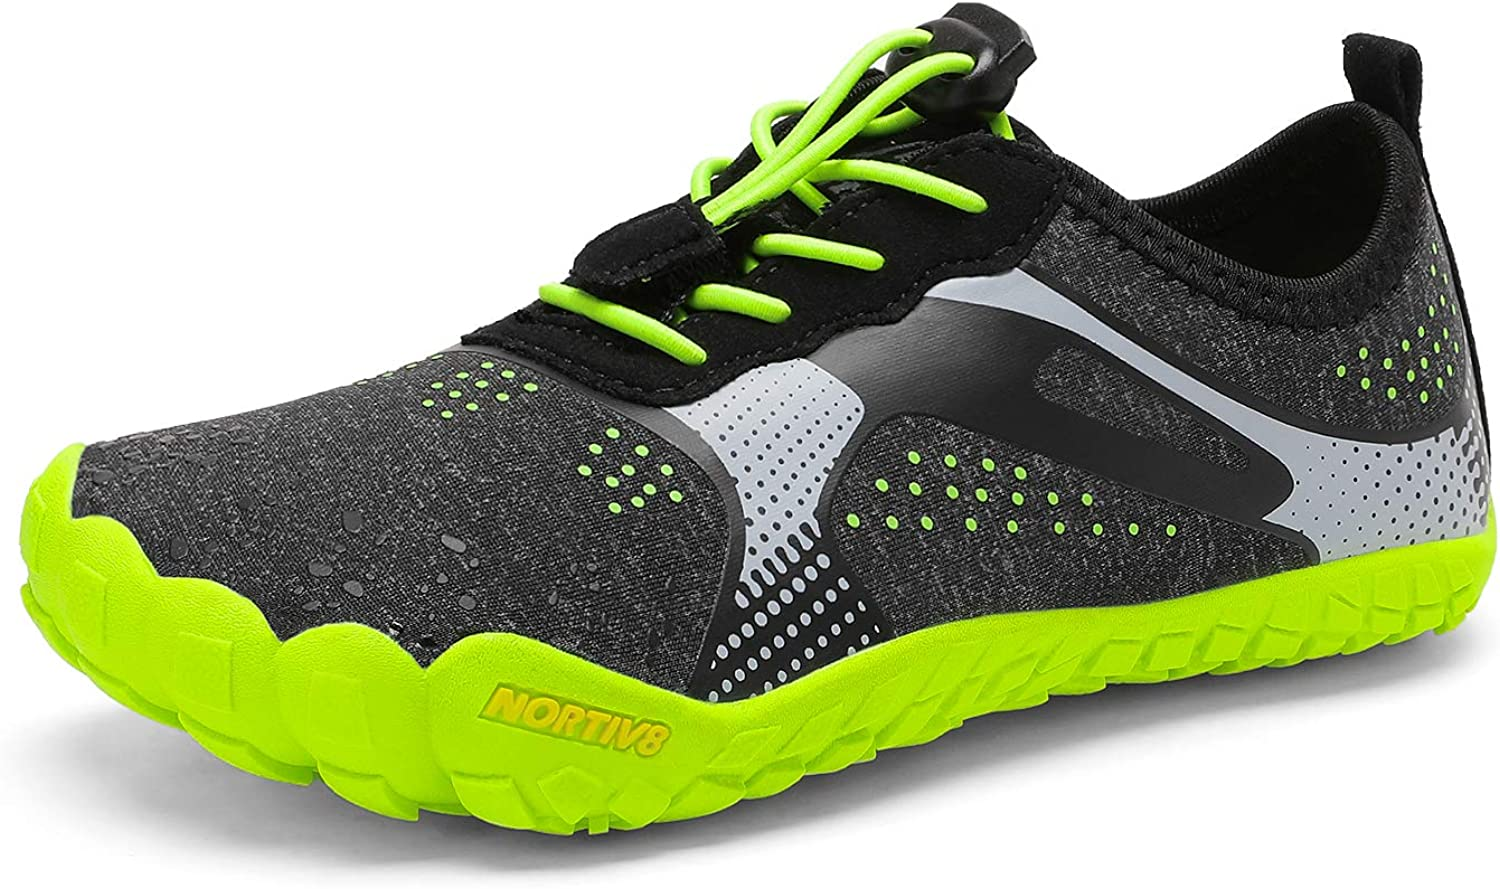 NORTIV 8 Kids Water Shoes for Boys Girls Outdoor Athletic Lightweight Sport Shoes Quick Dry Barefoot Swim Beach Shoes Black Neon Green Size 5 Big Kid Aqua-k1